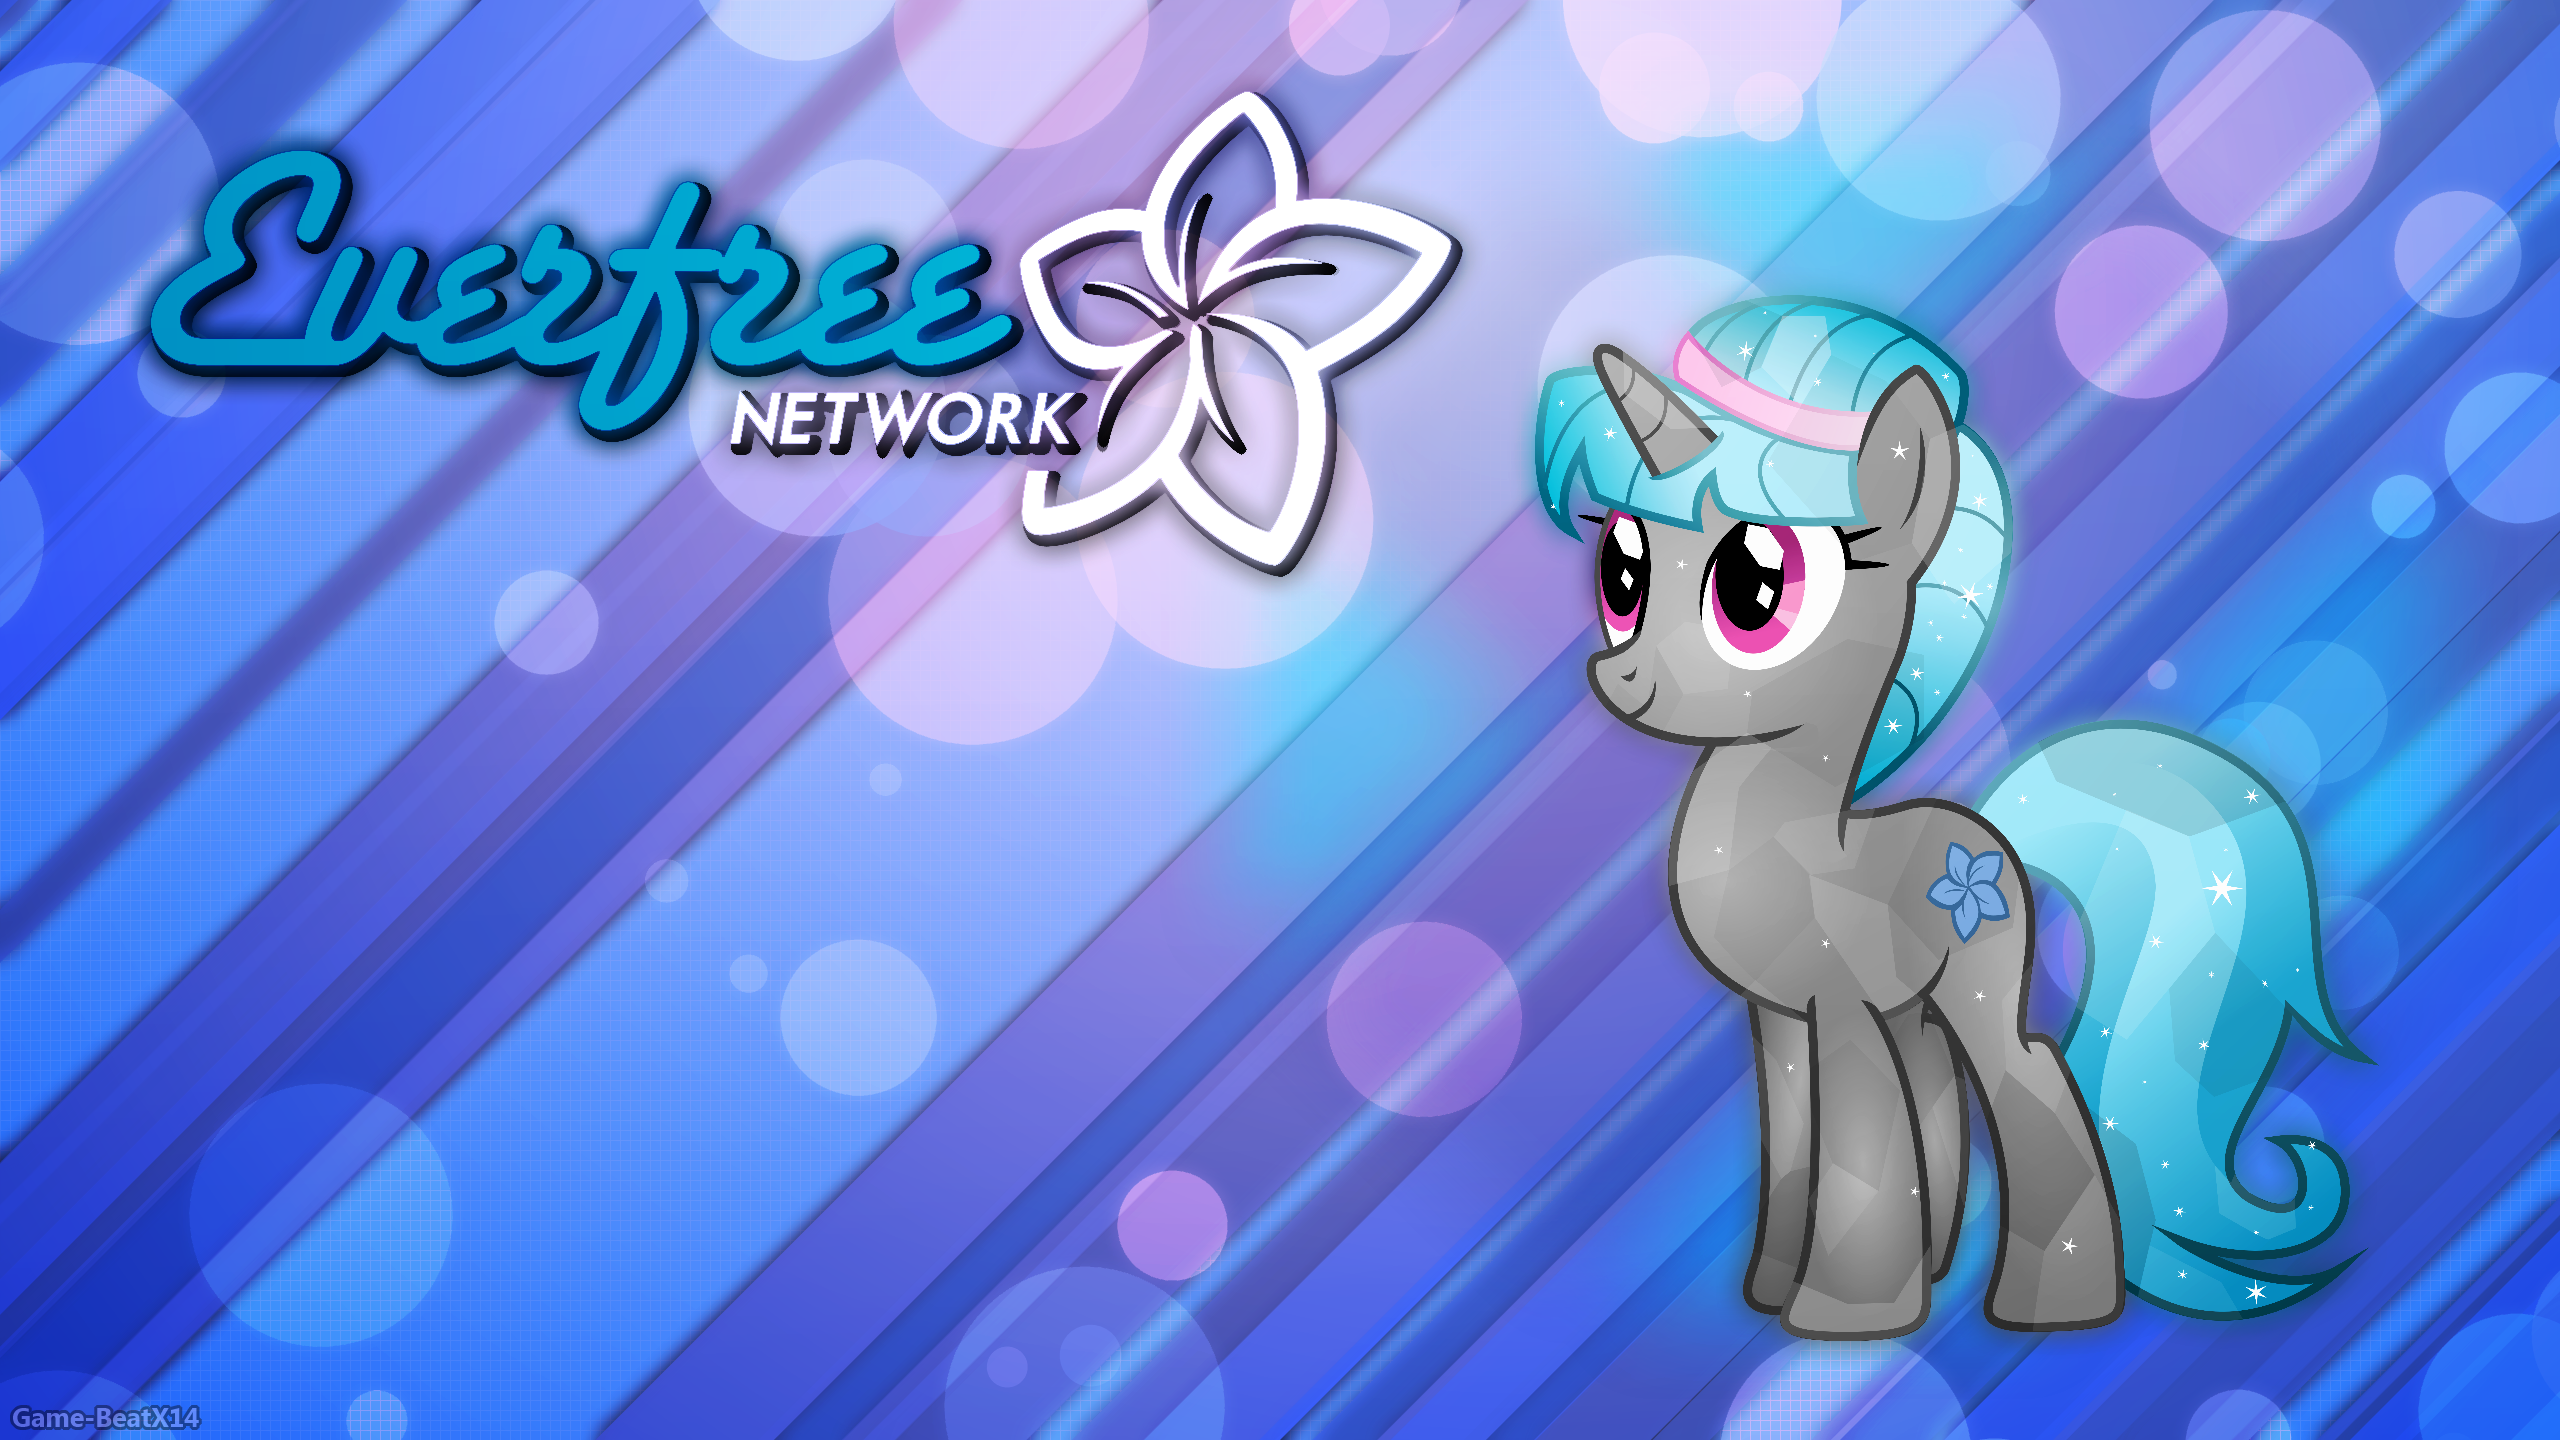 Star Flower - Everfree Network by Game-BeatX14 and TheShadowStone